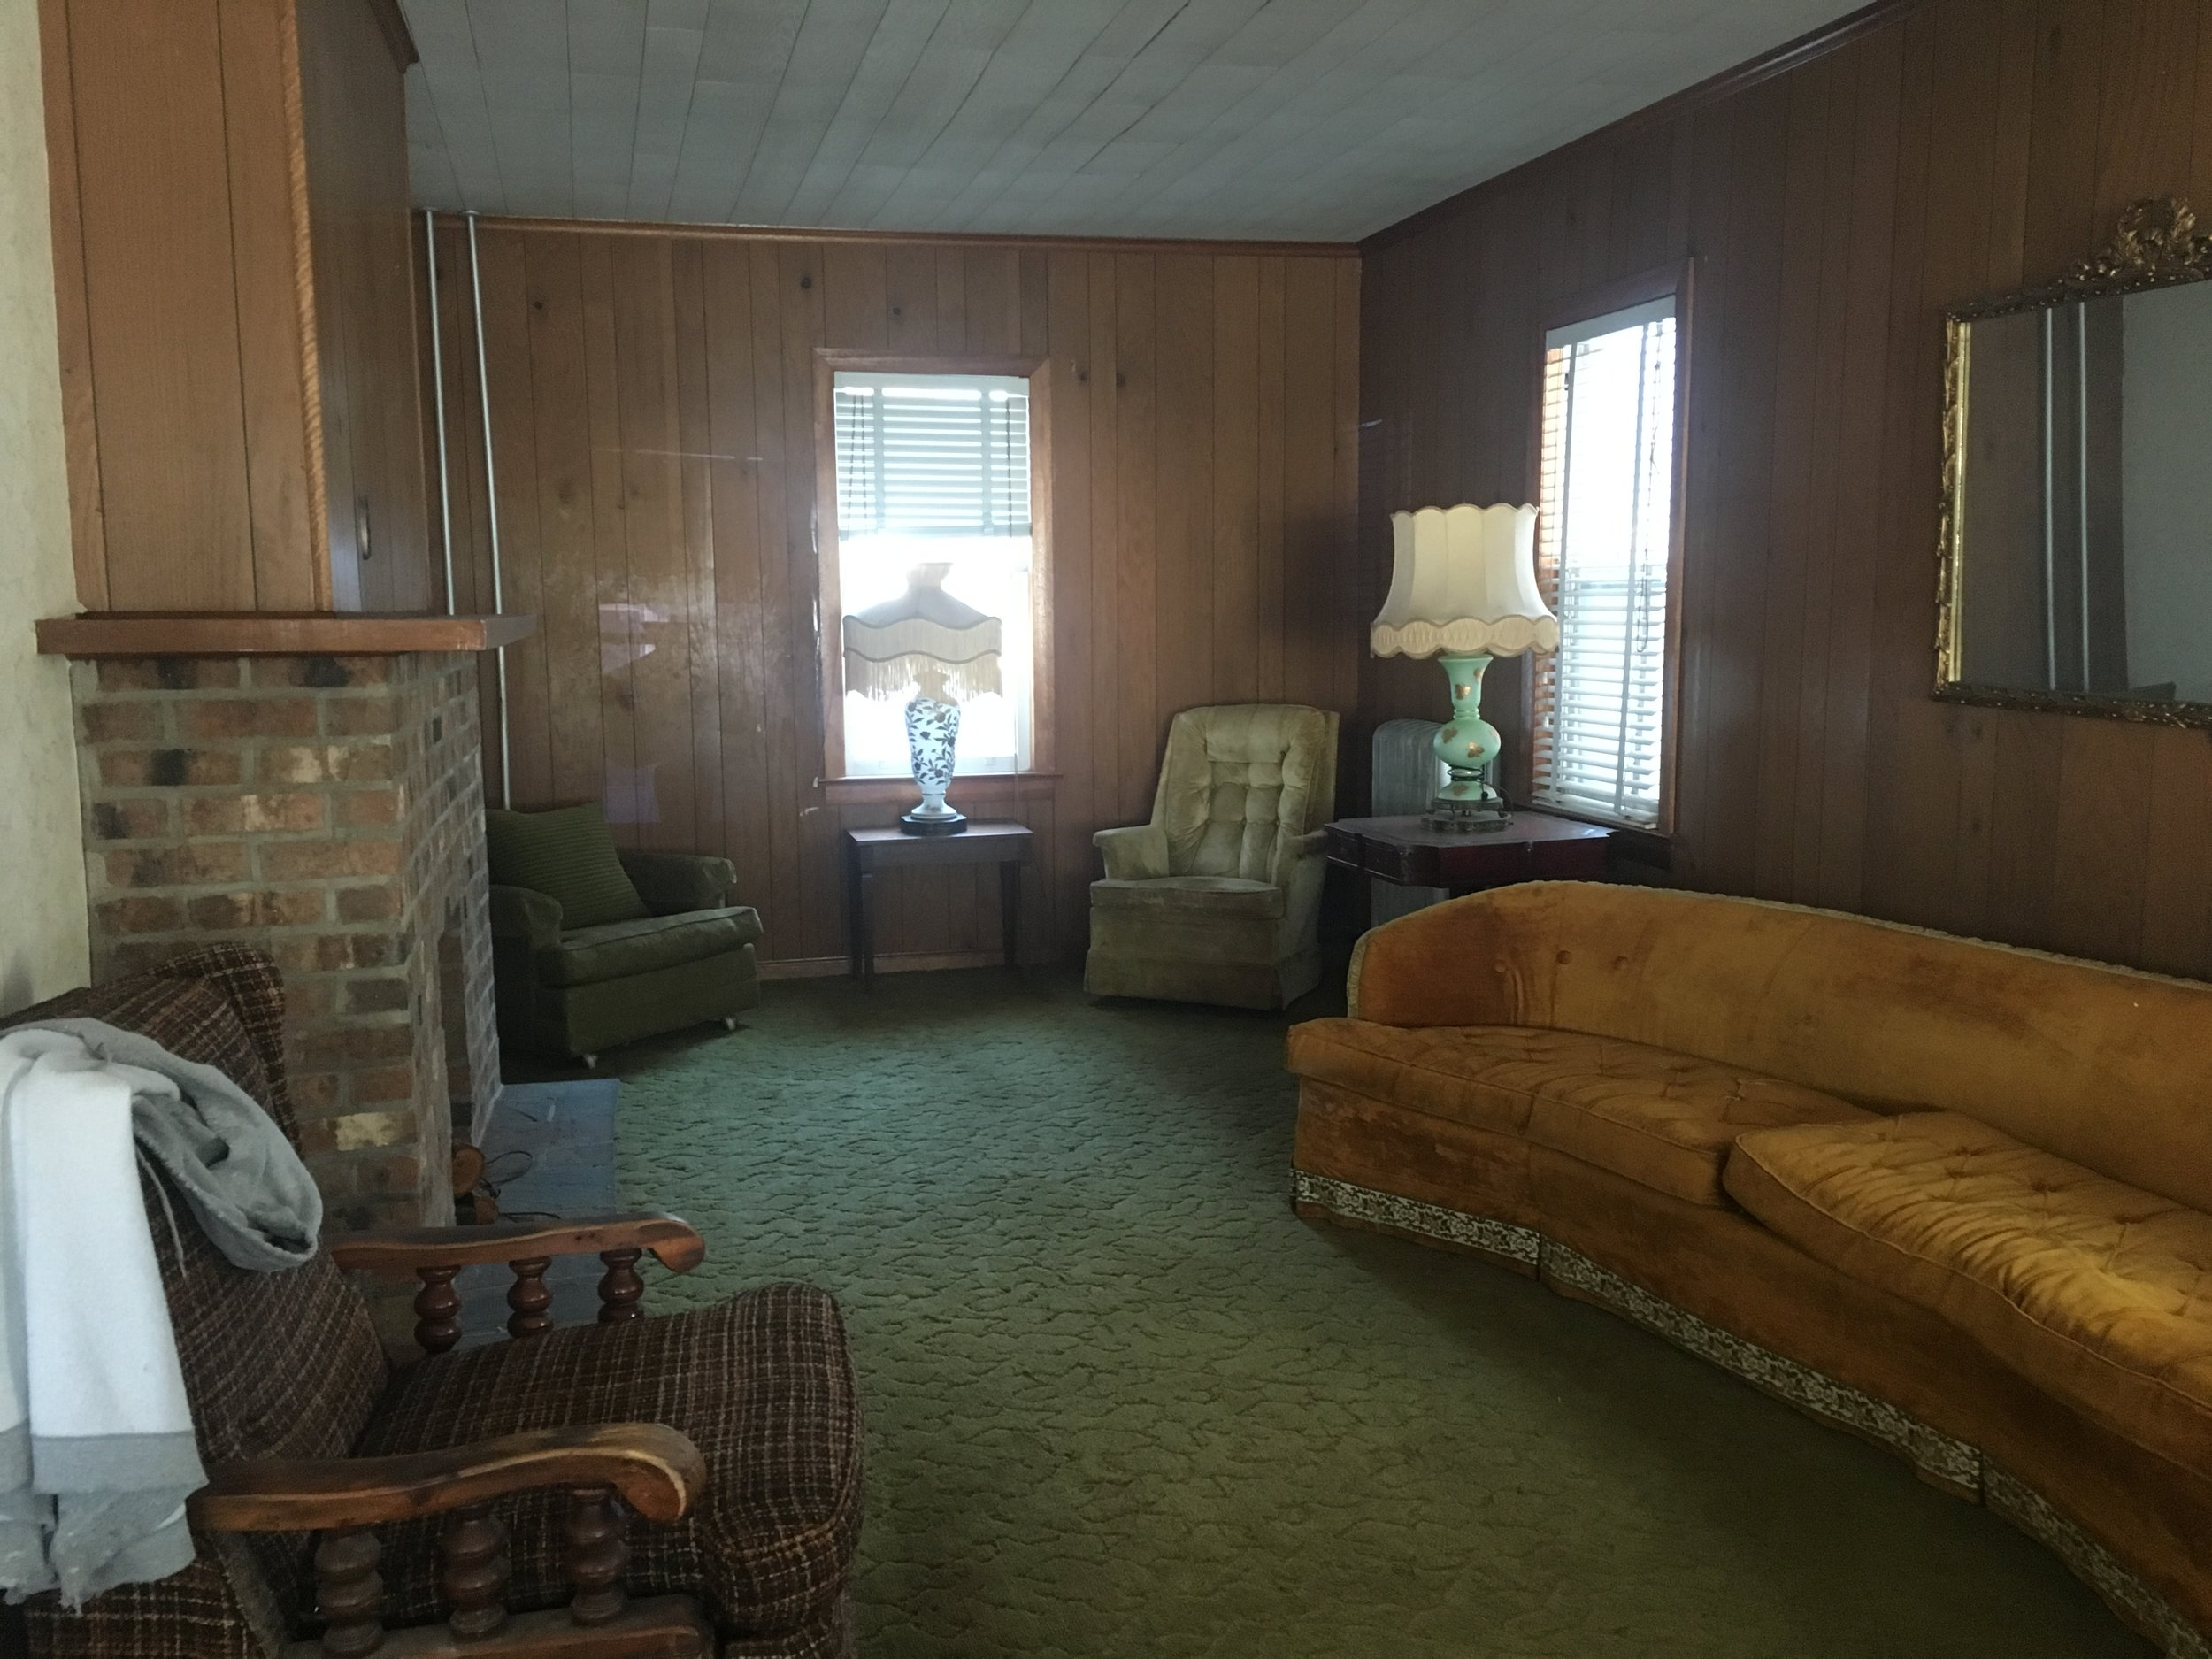 Awesome interior blends a mix of 1920s and 1970s.